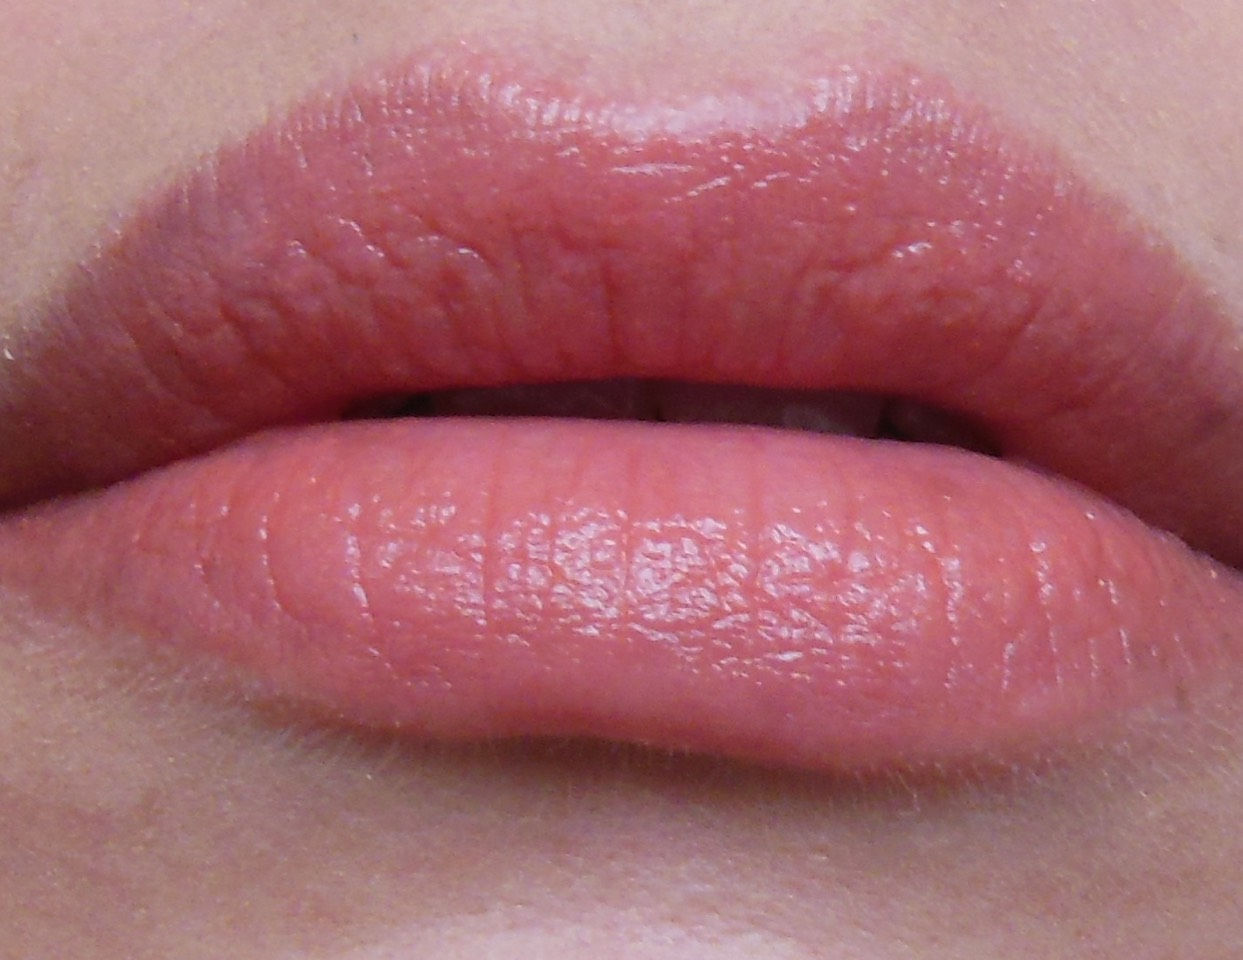 Apply a lip balm on your lips before your lipstick to make a sheer lipstick/ lip balm.